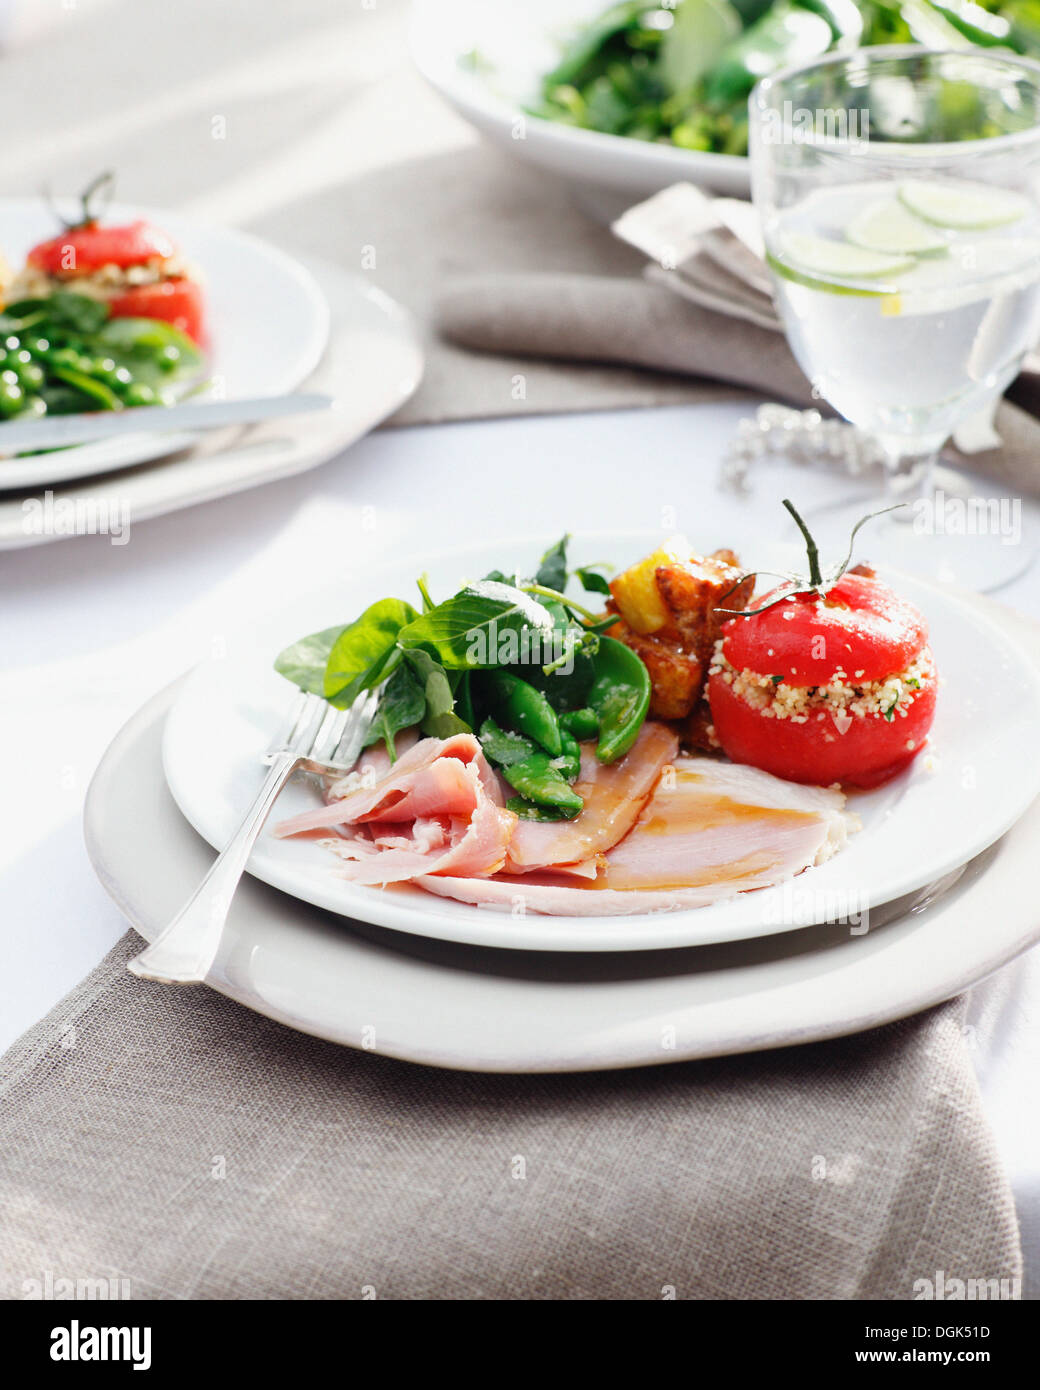 Plates of glazed ham with stuffed tomatoes and spinach - Stock Image